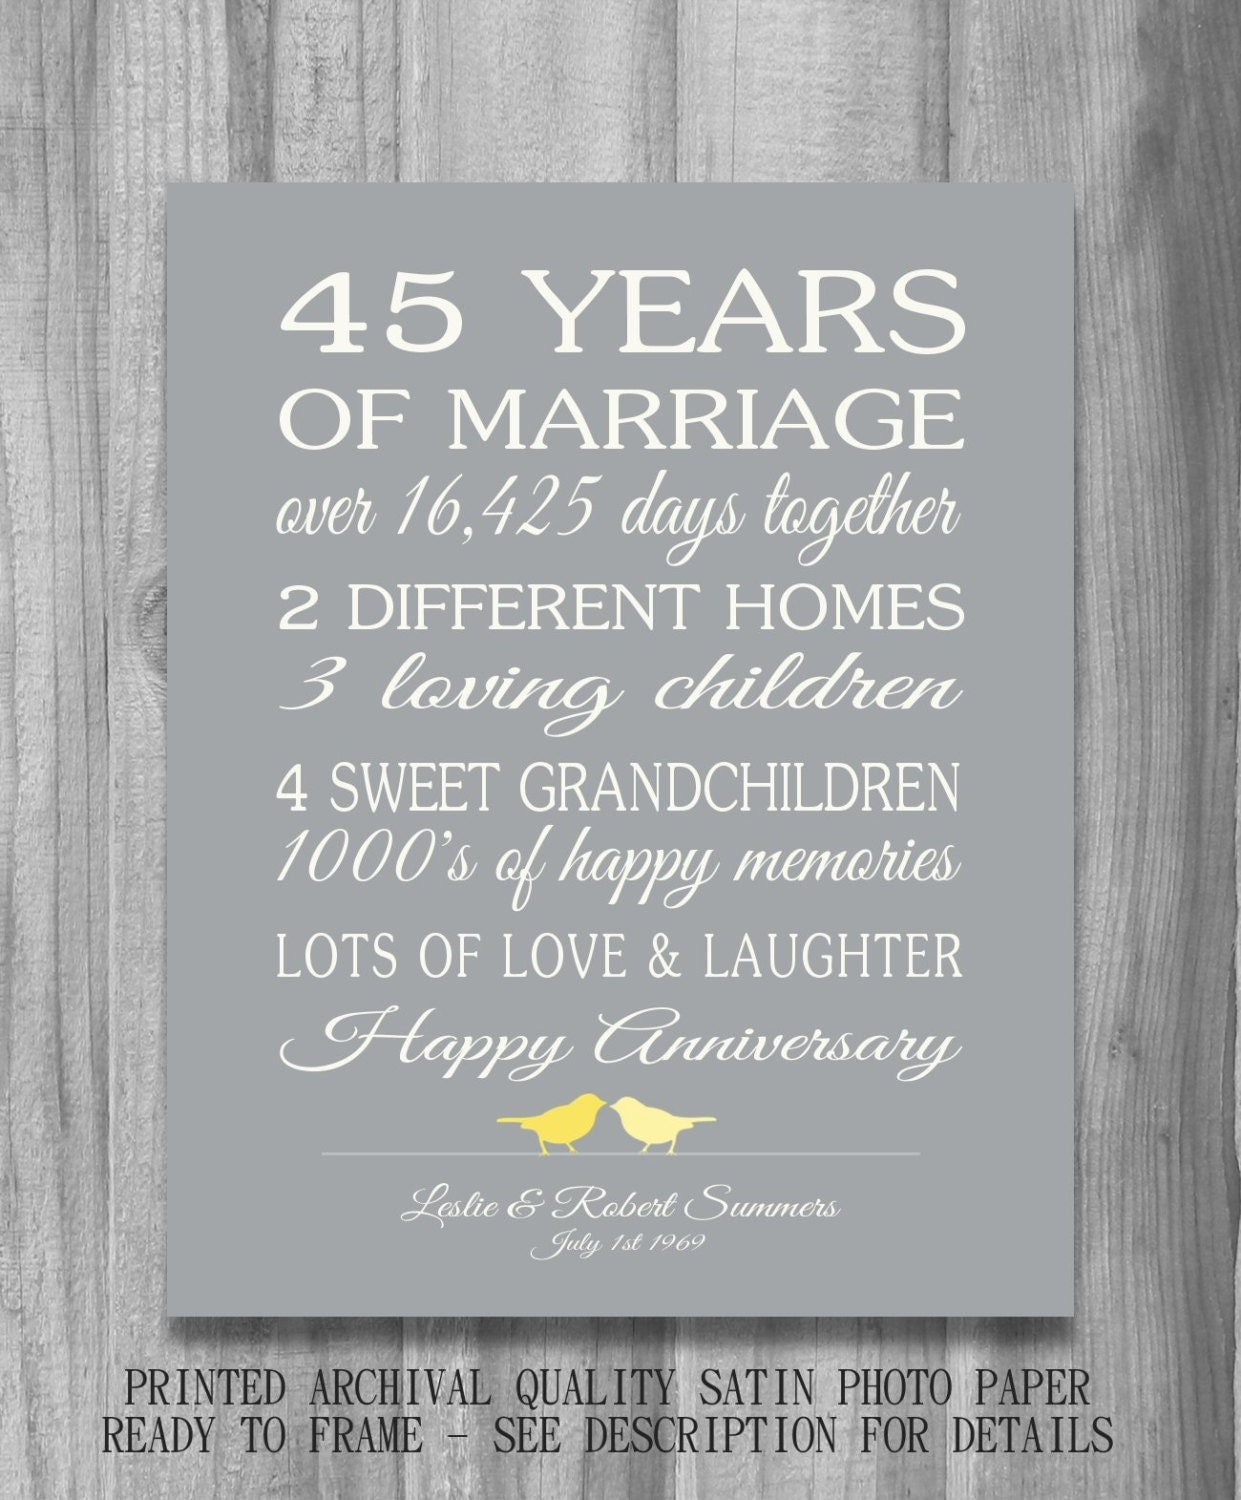 Th wedding anniversary gift customized personalized love